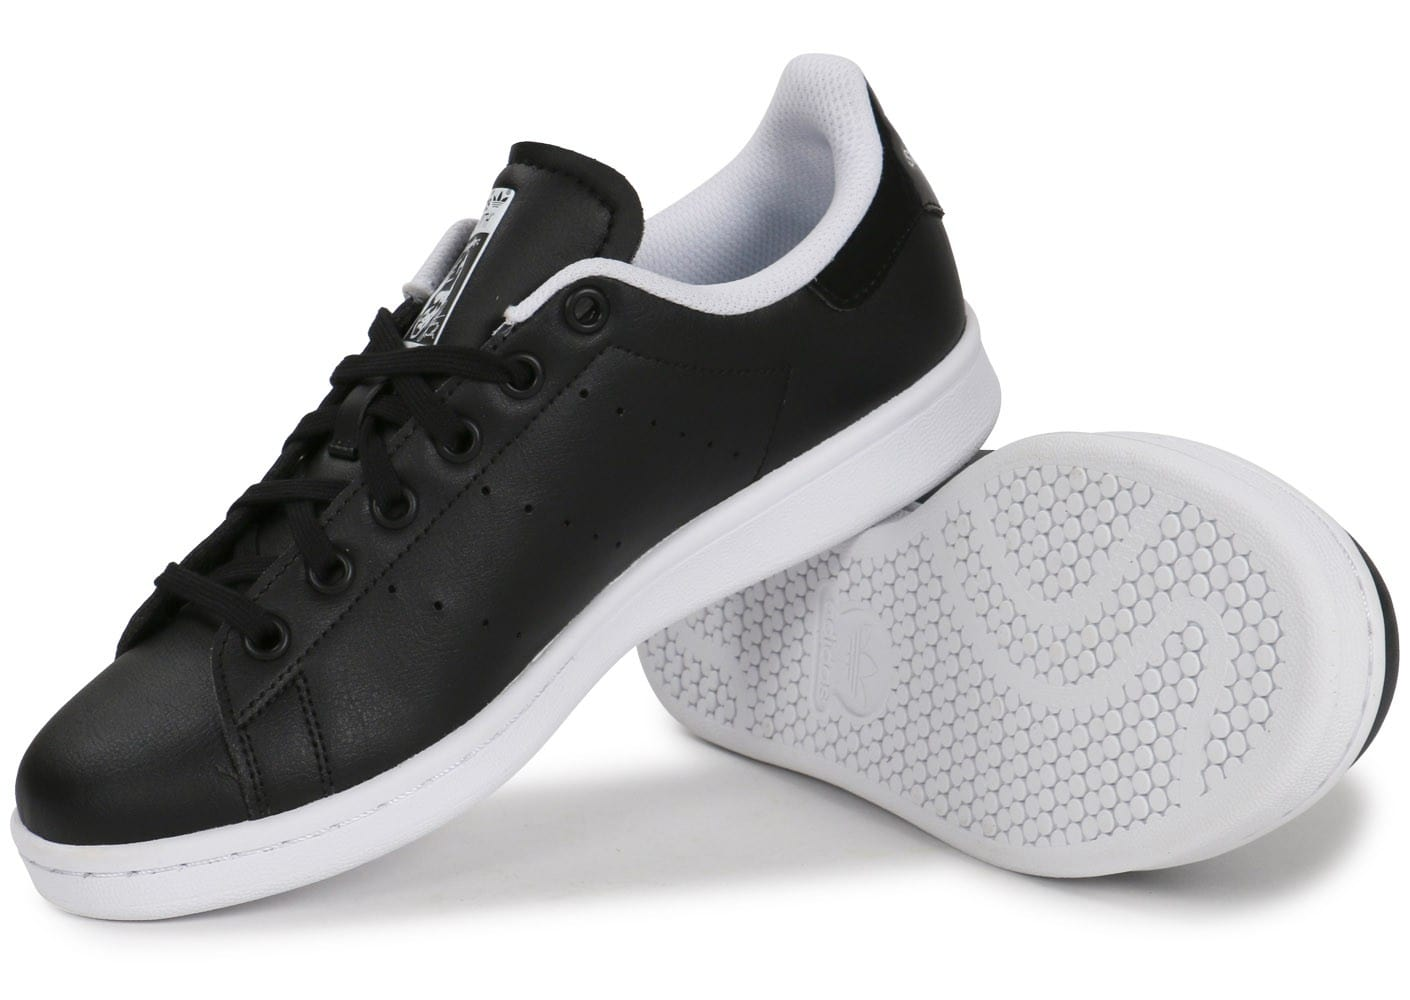 adidas stan smith junior noire et blanche chaussures adidas chausport. Black Bedroom Furniture Sets. Home Design Ideas